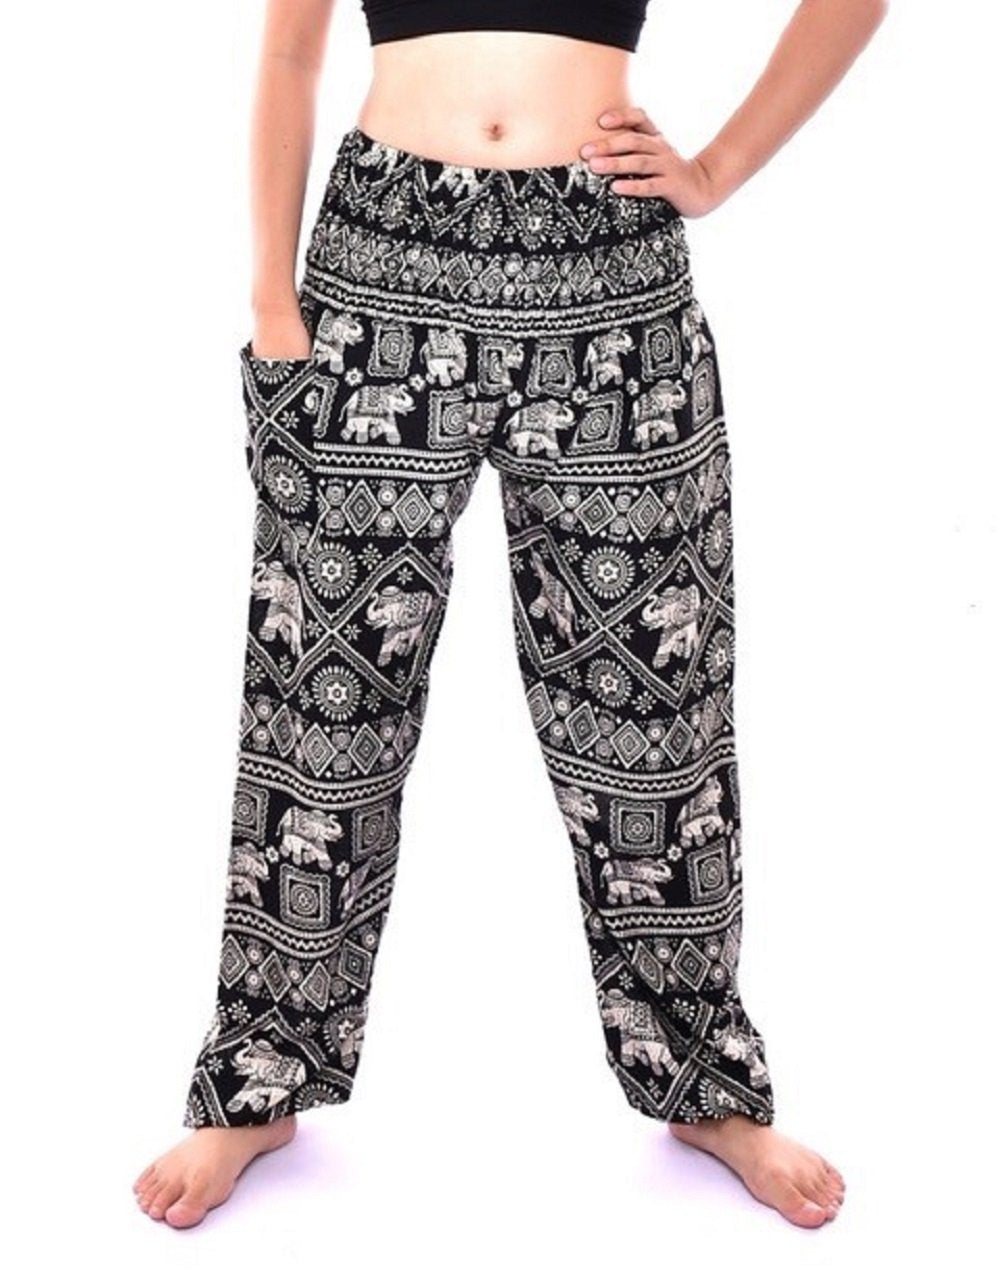 Bohotusk Black Elephant Print Womens Harem Pants One Size Elasticated Smocked Waist